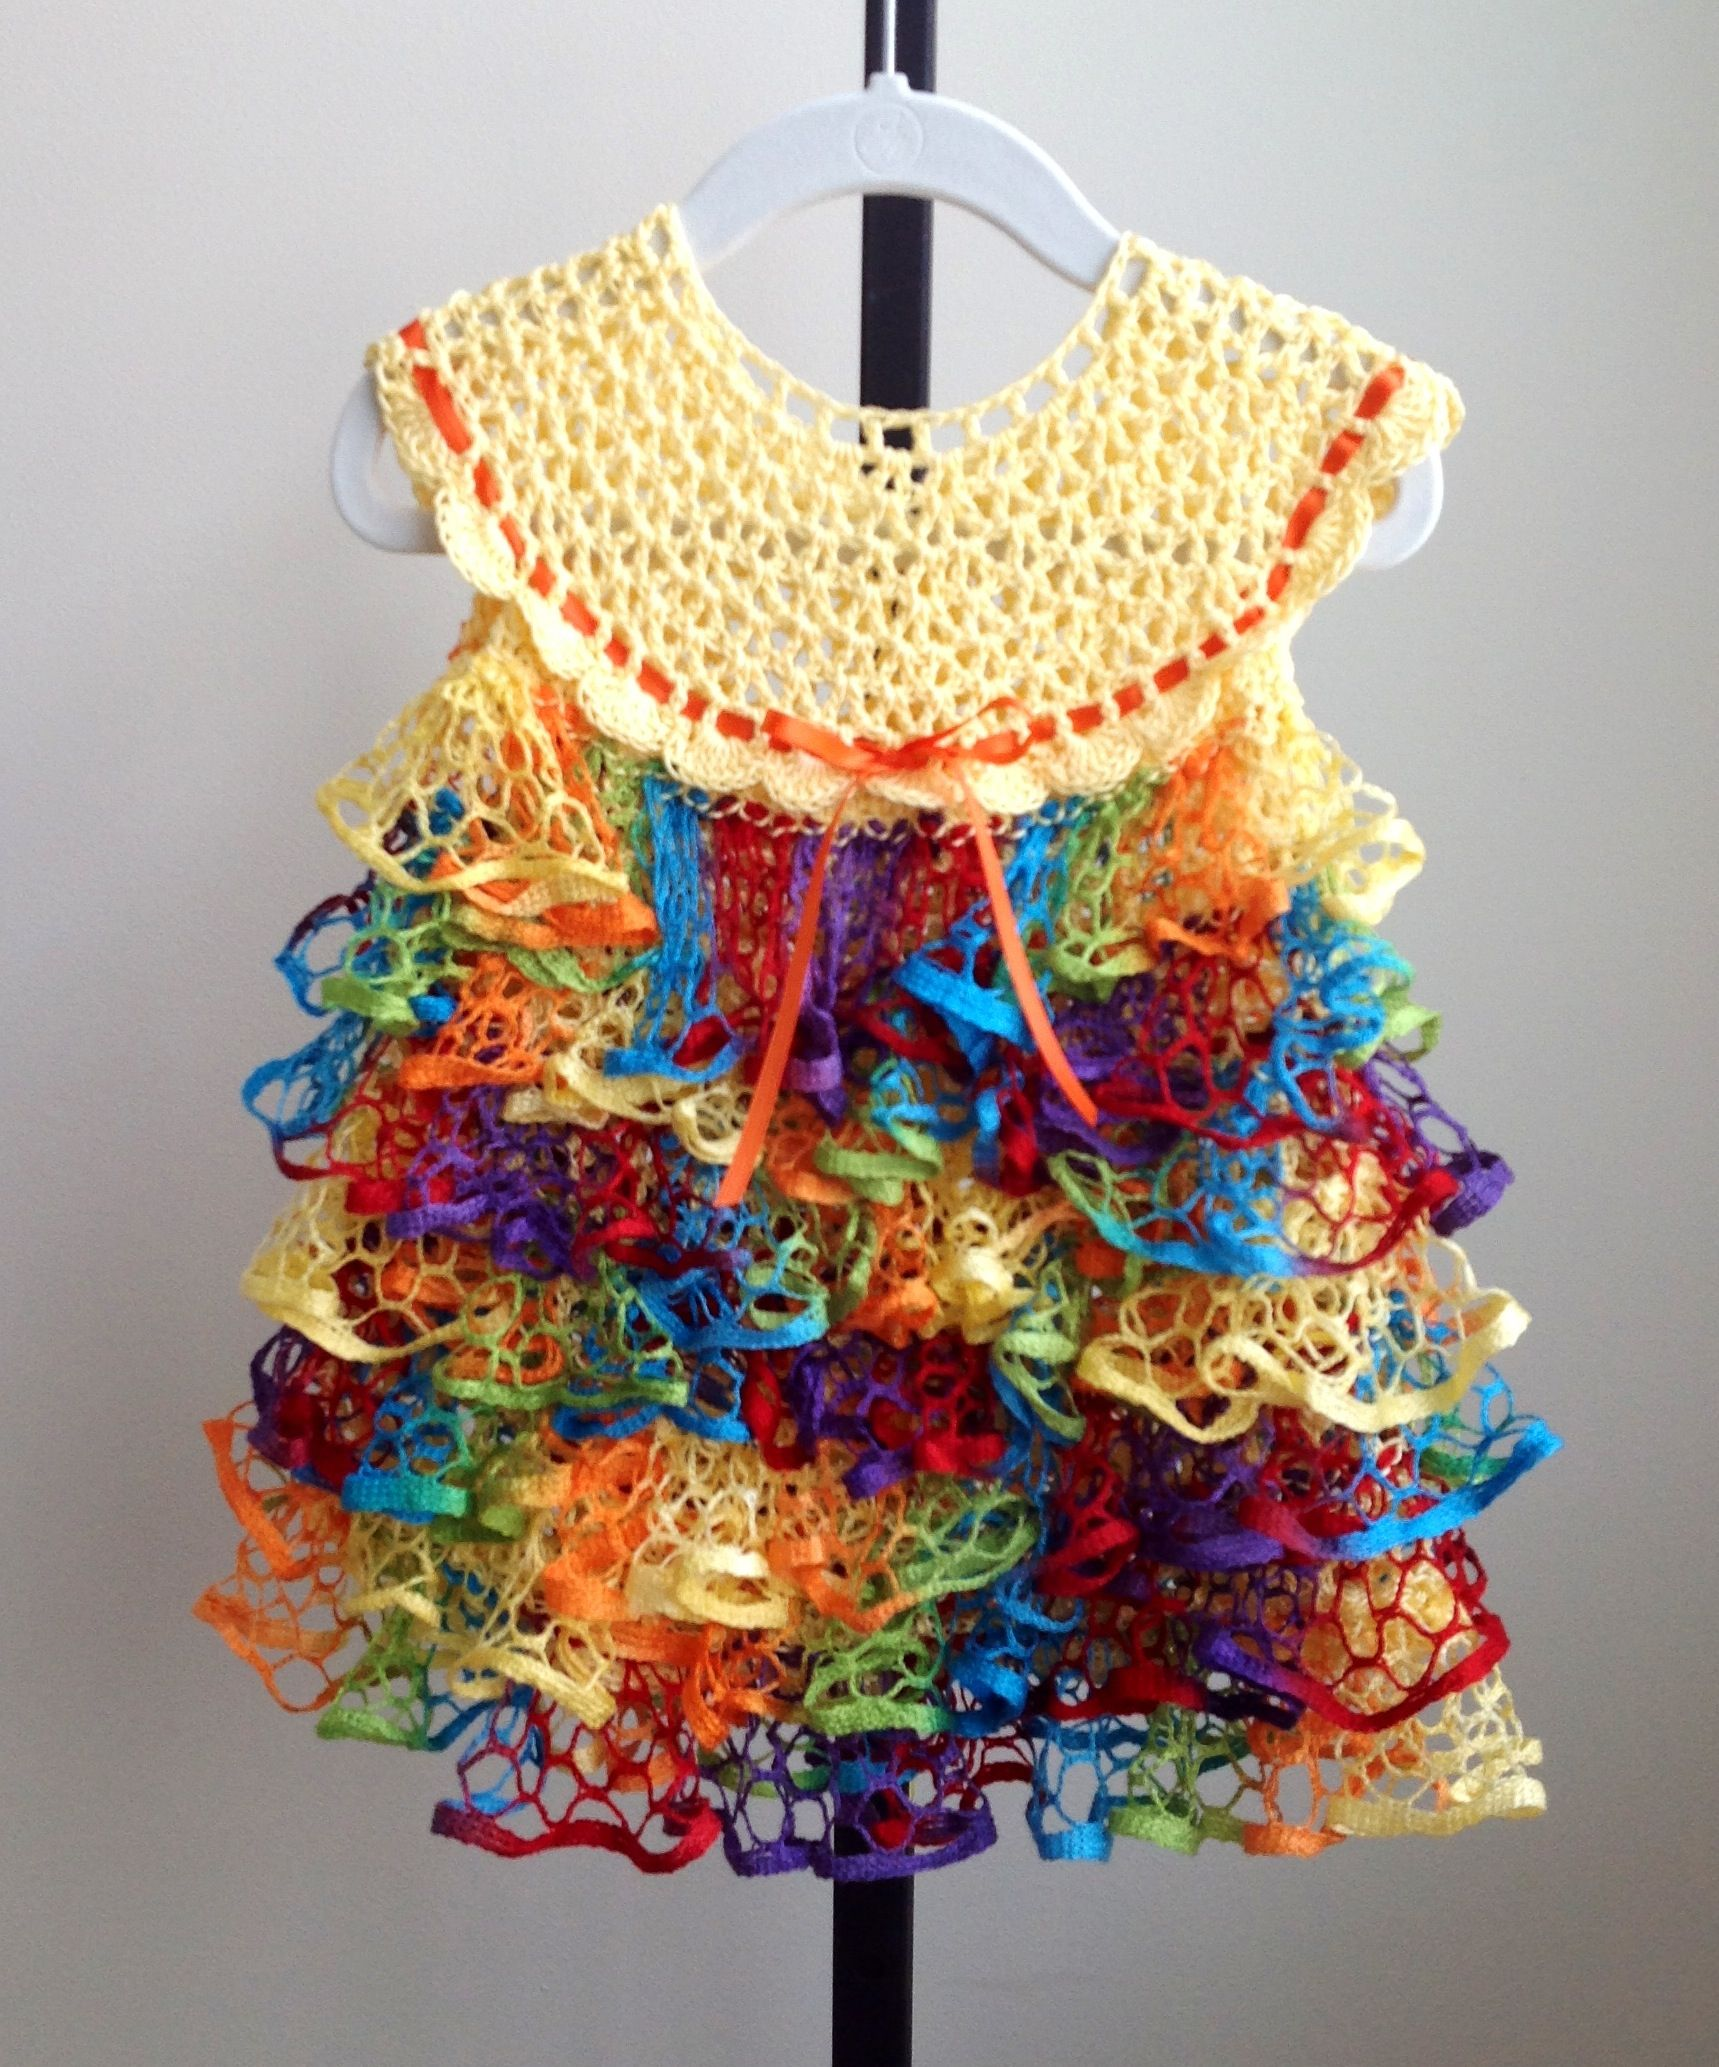 Crochet baby dress, ruffle bottom 6-9 months IMAGE only. Adorable ...